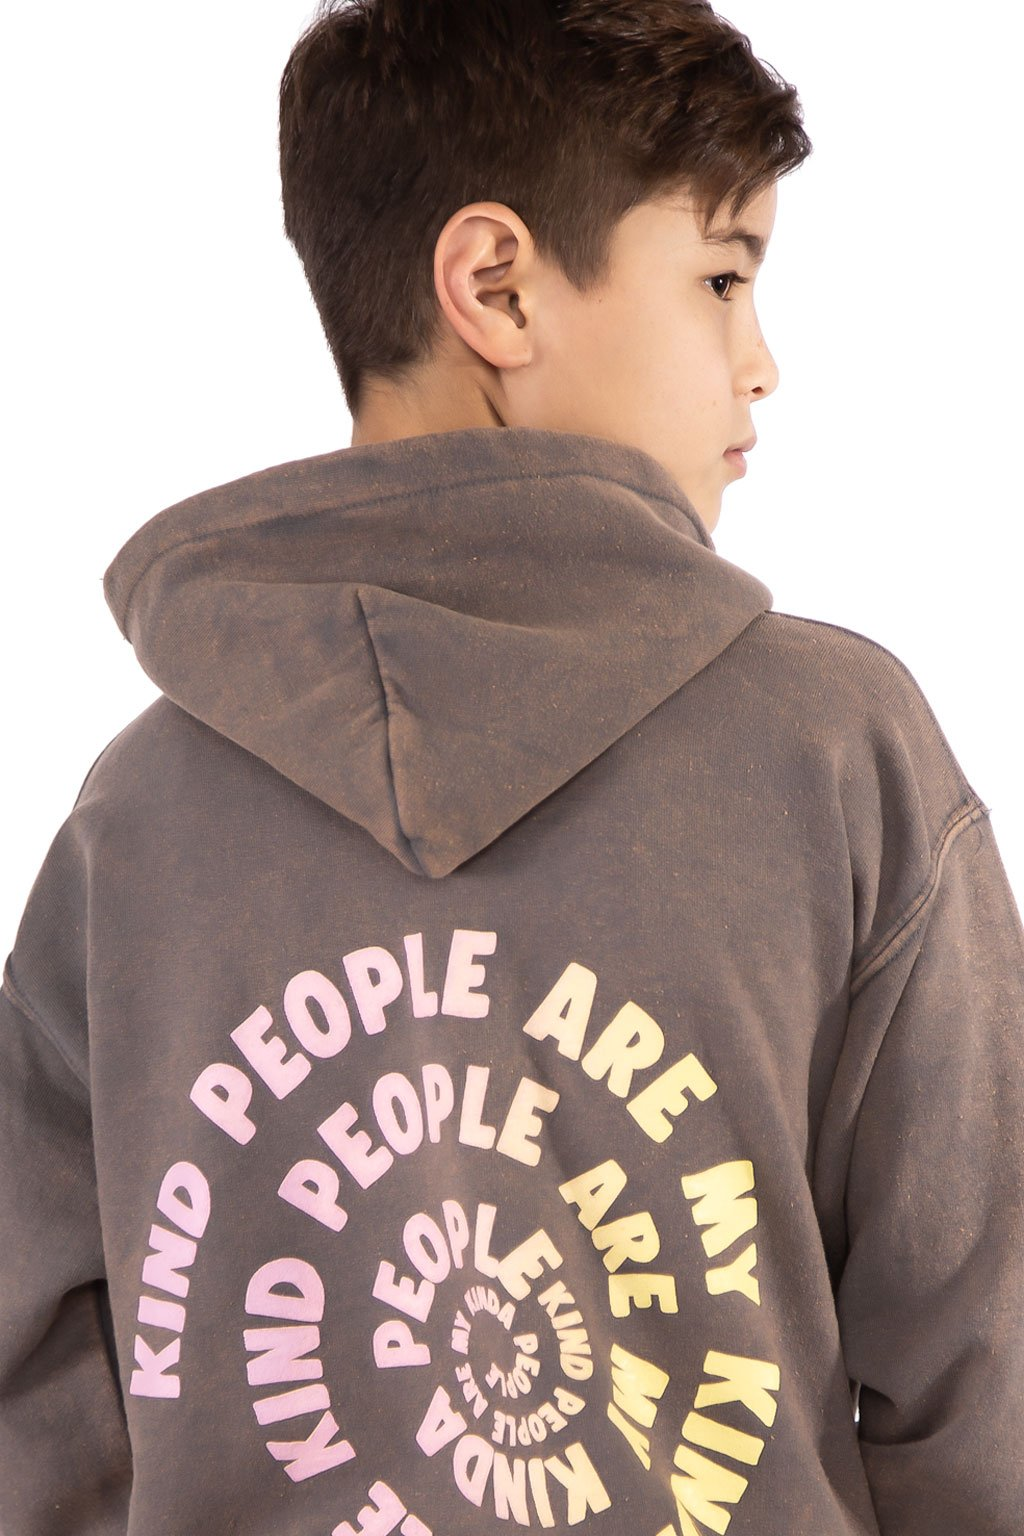 Vintage Charcoal Grey Kind people Hoodie - Port 213.com